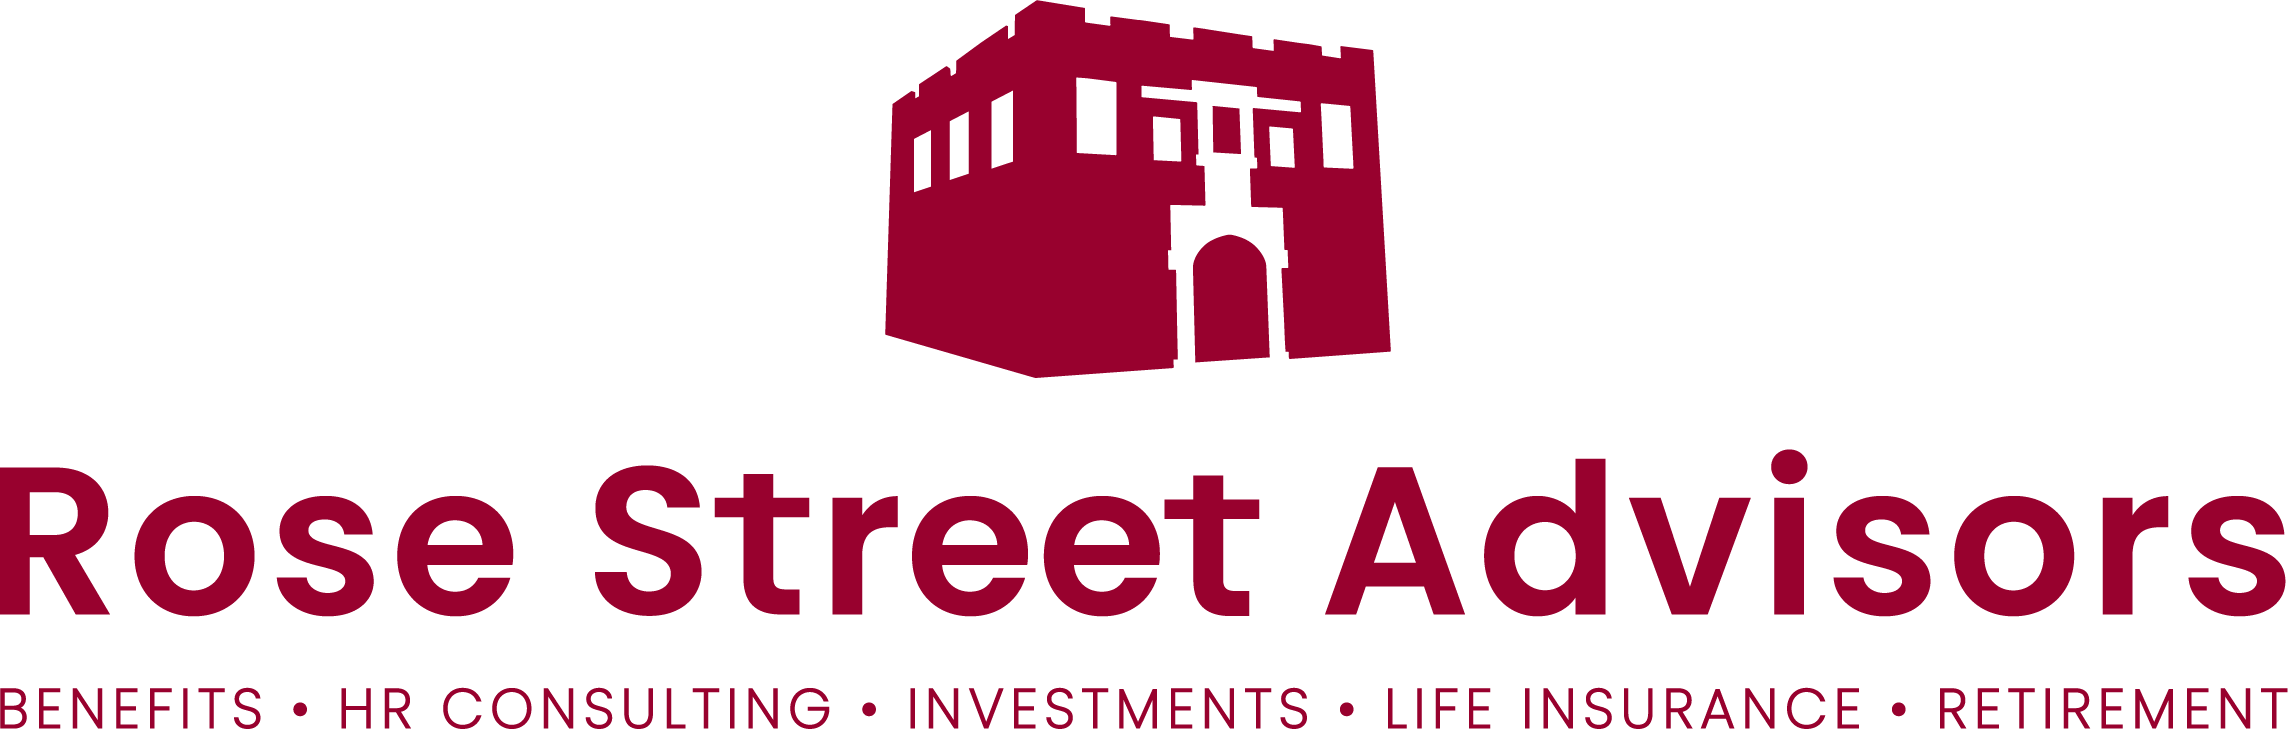 rose-street-advisors-red